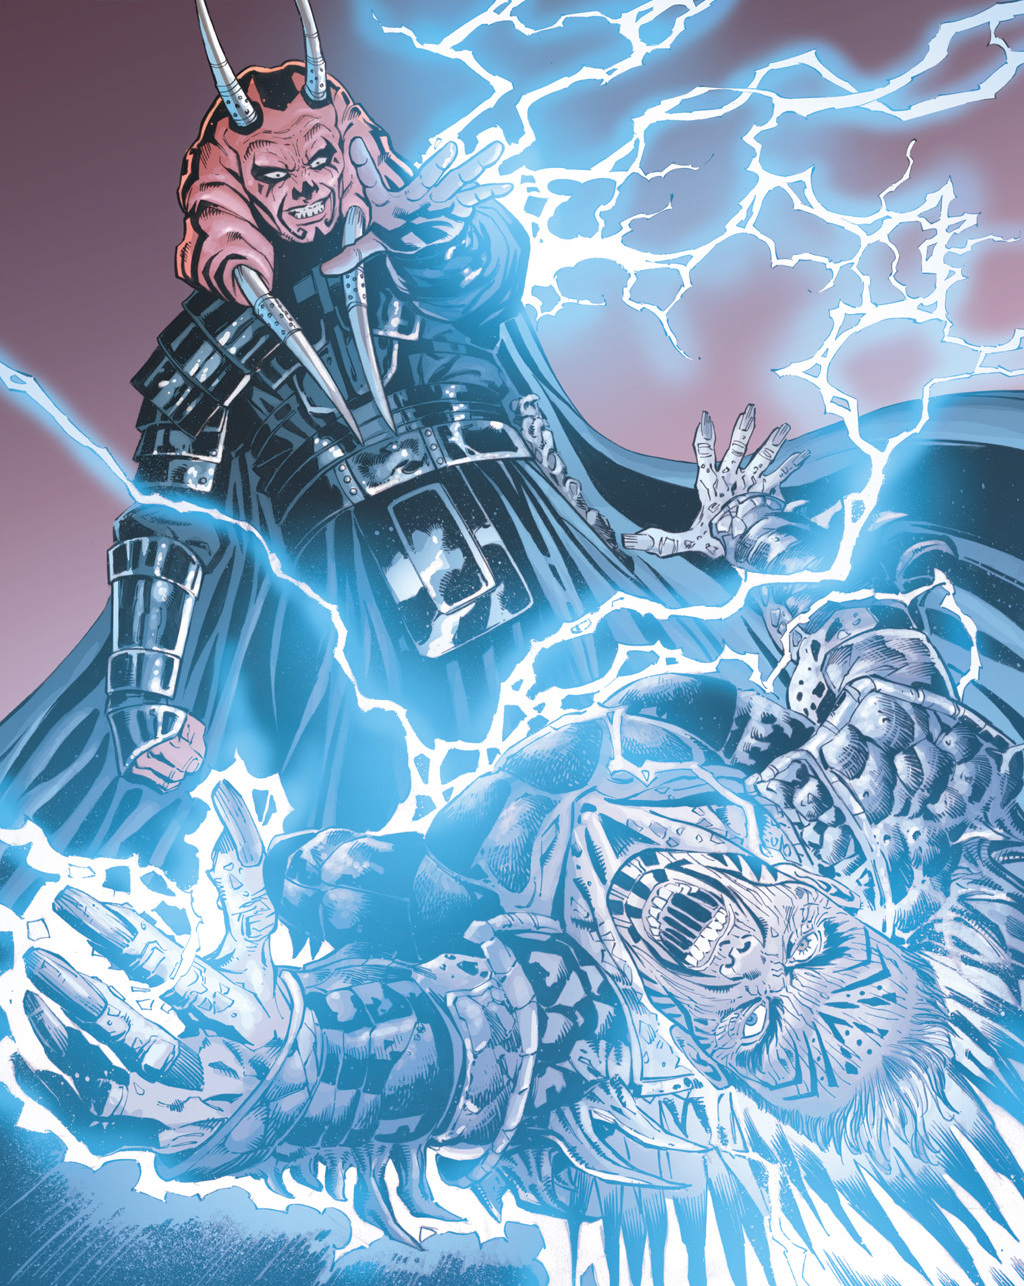 Darth Krayt vs Darth Bane Darth Krayt's Death at The